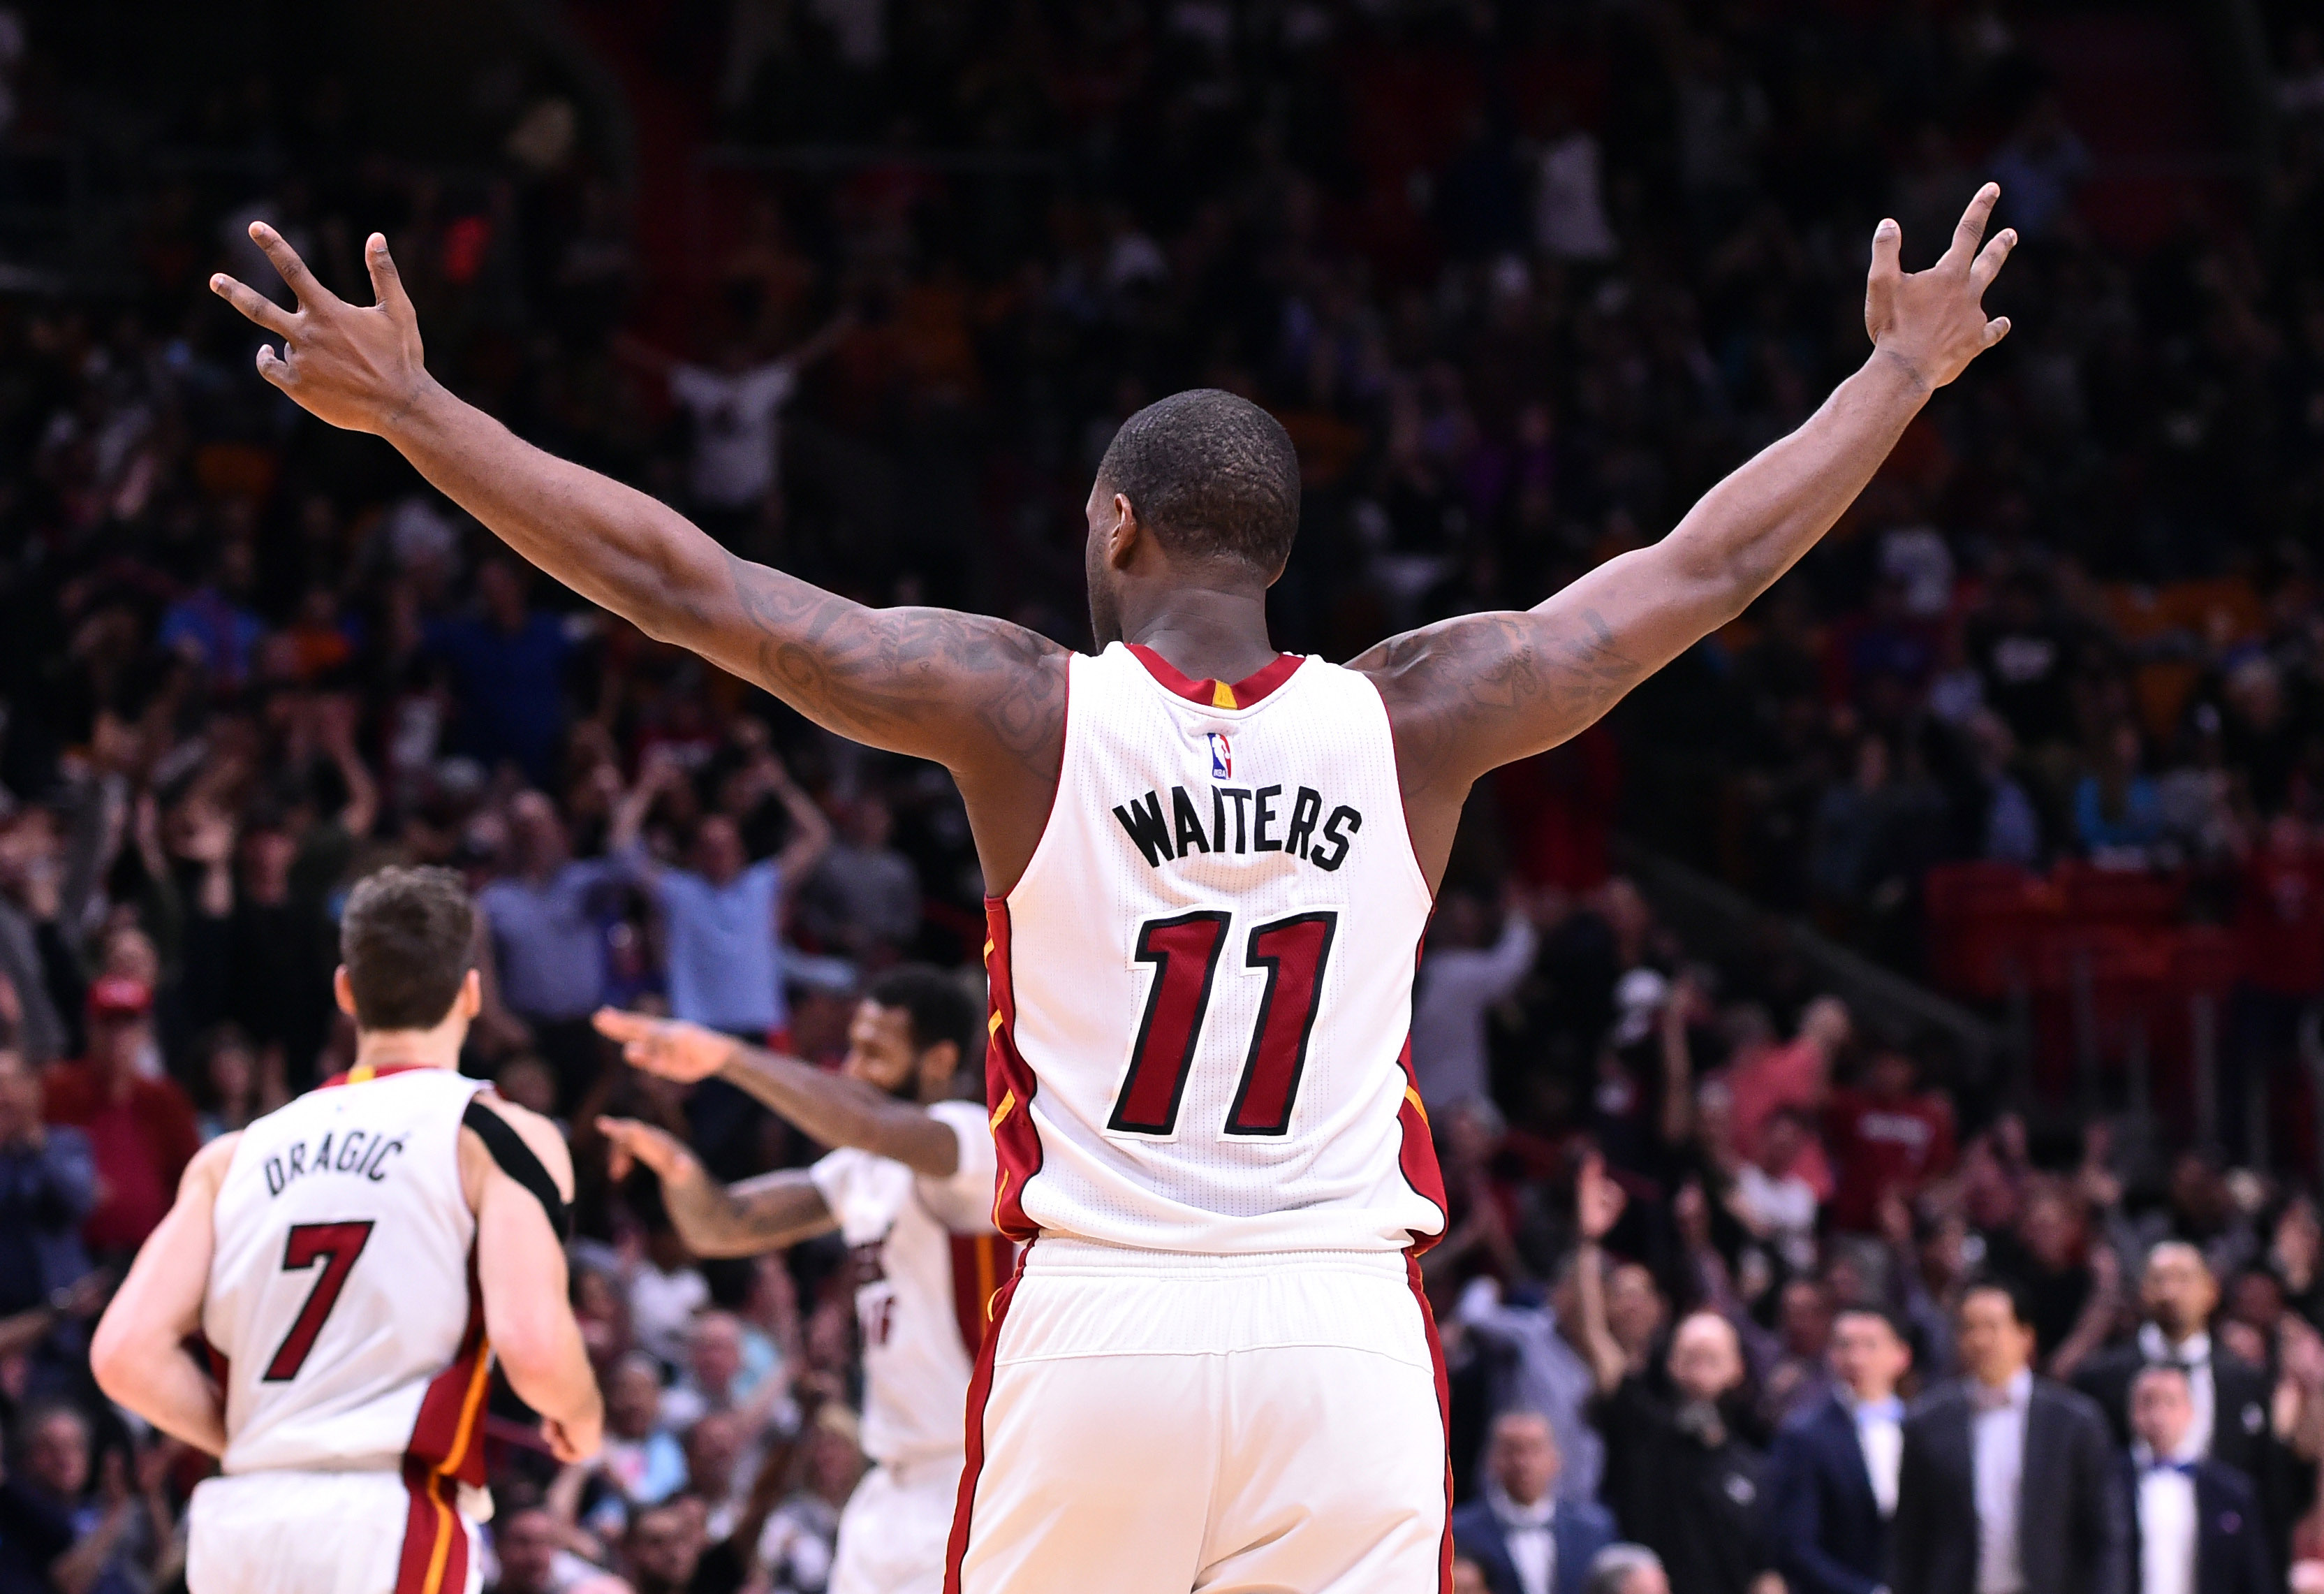 It Was A Memorable Season For The Journeyman Shooting Guard Who Looks As If Hes Finally Found A Place To Call Home With The Miami Heat